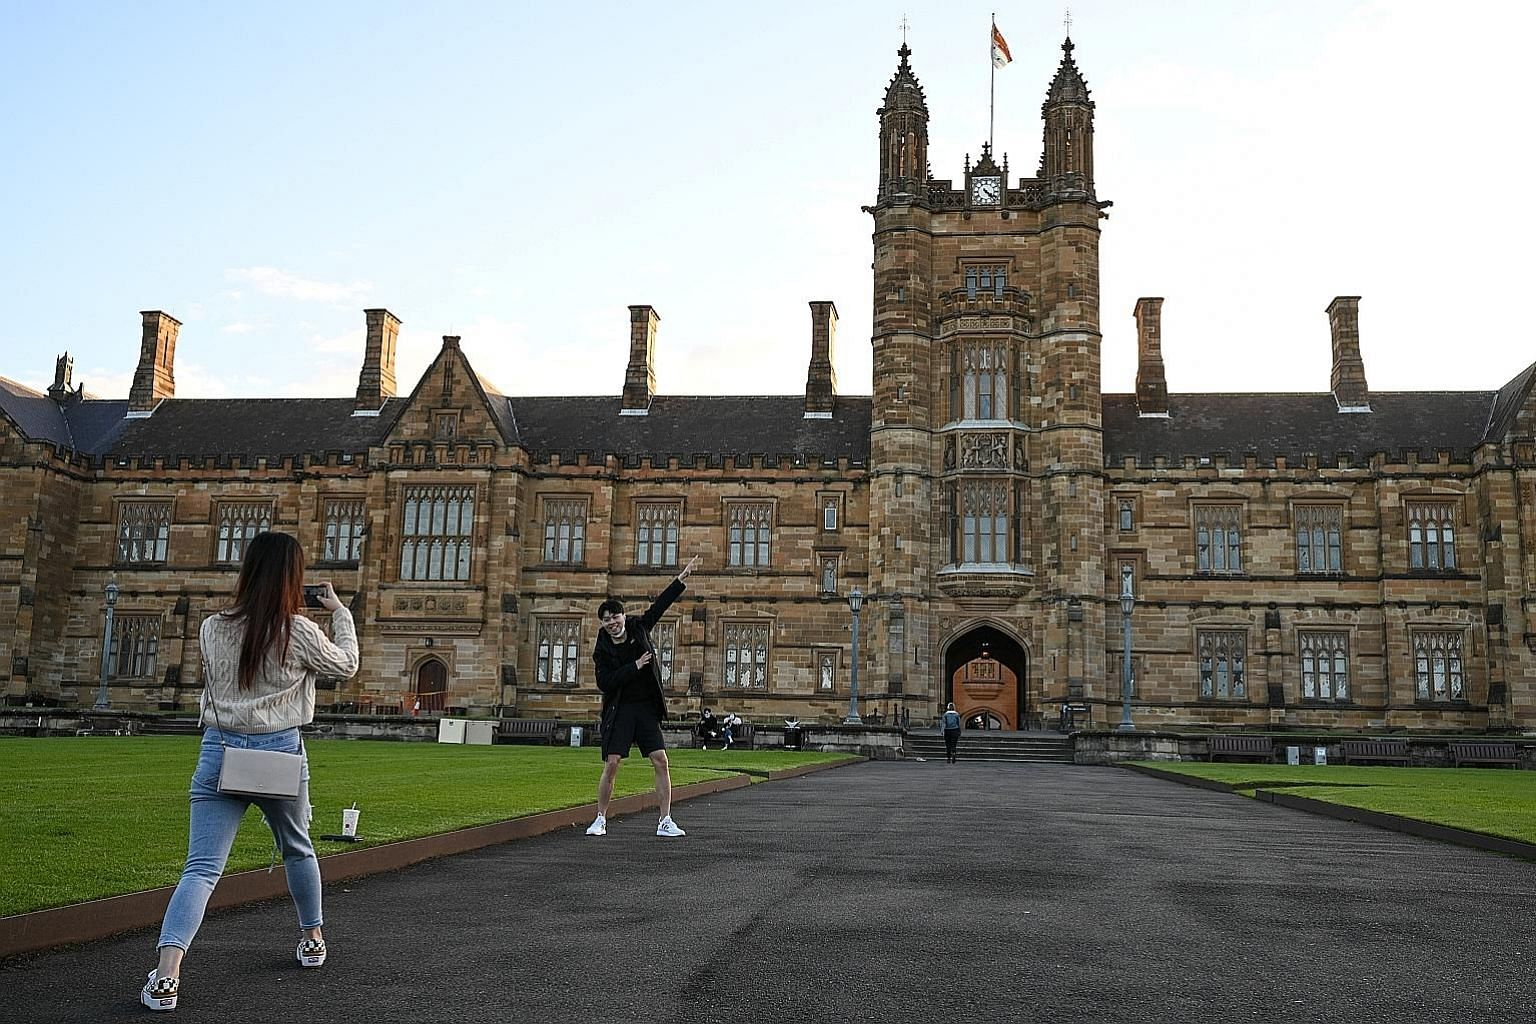 International students at the University of Sydney earlier this month. Many international students left Australia as the pandemic spread globally, and returning has proved difficult with countries keeping their borders shut.